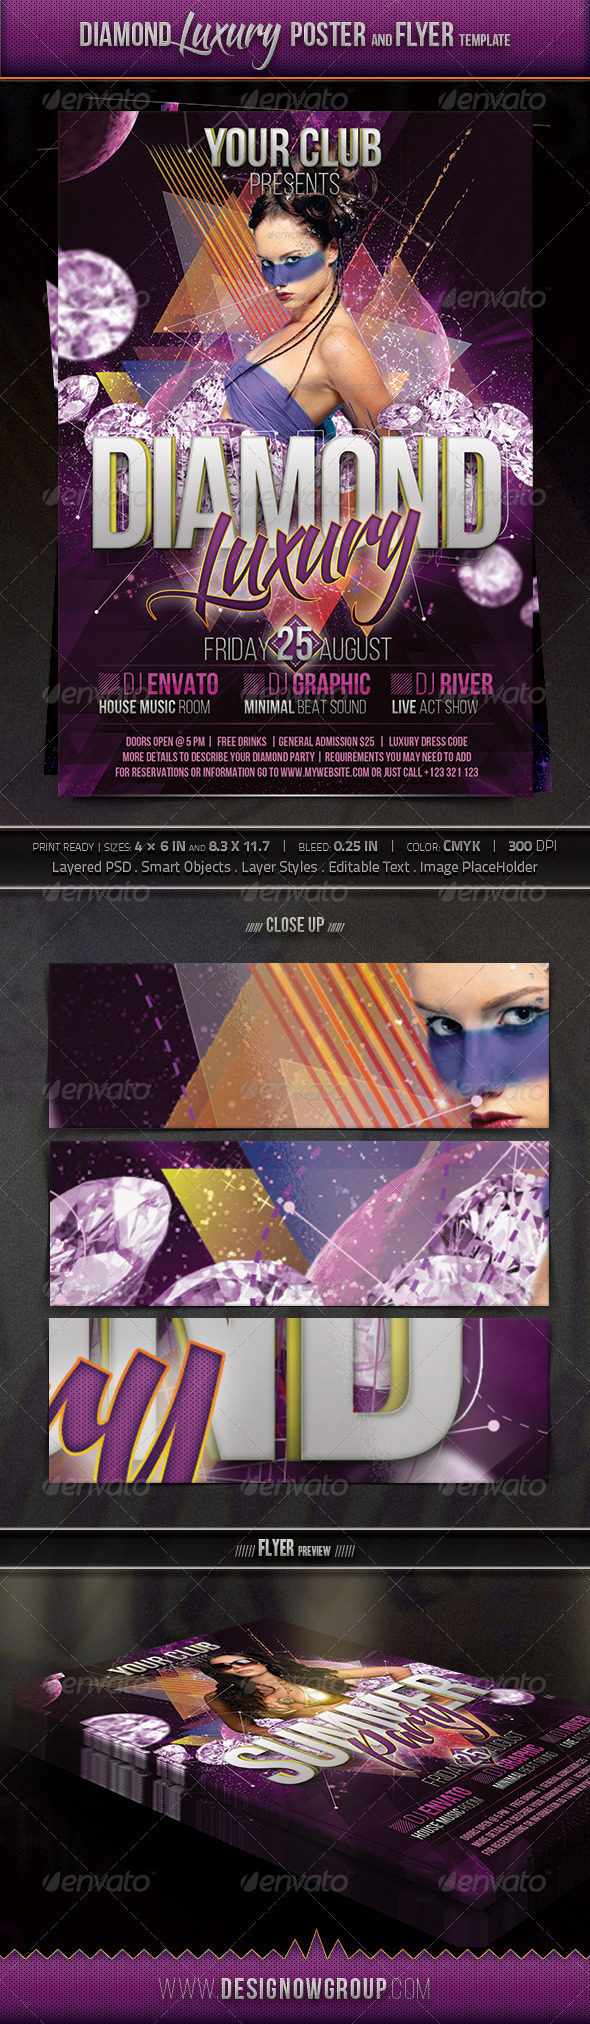 Diamond Luxury Flyer And Poster Template - Clubs & Parties Events